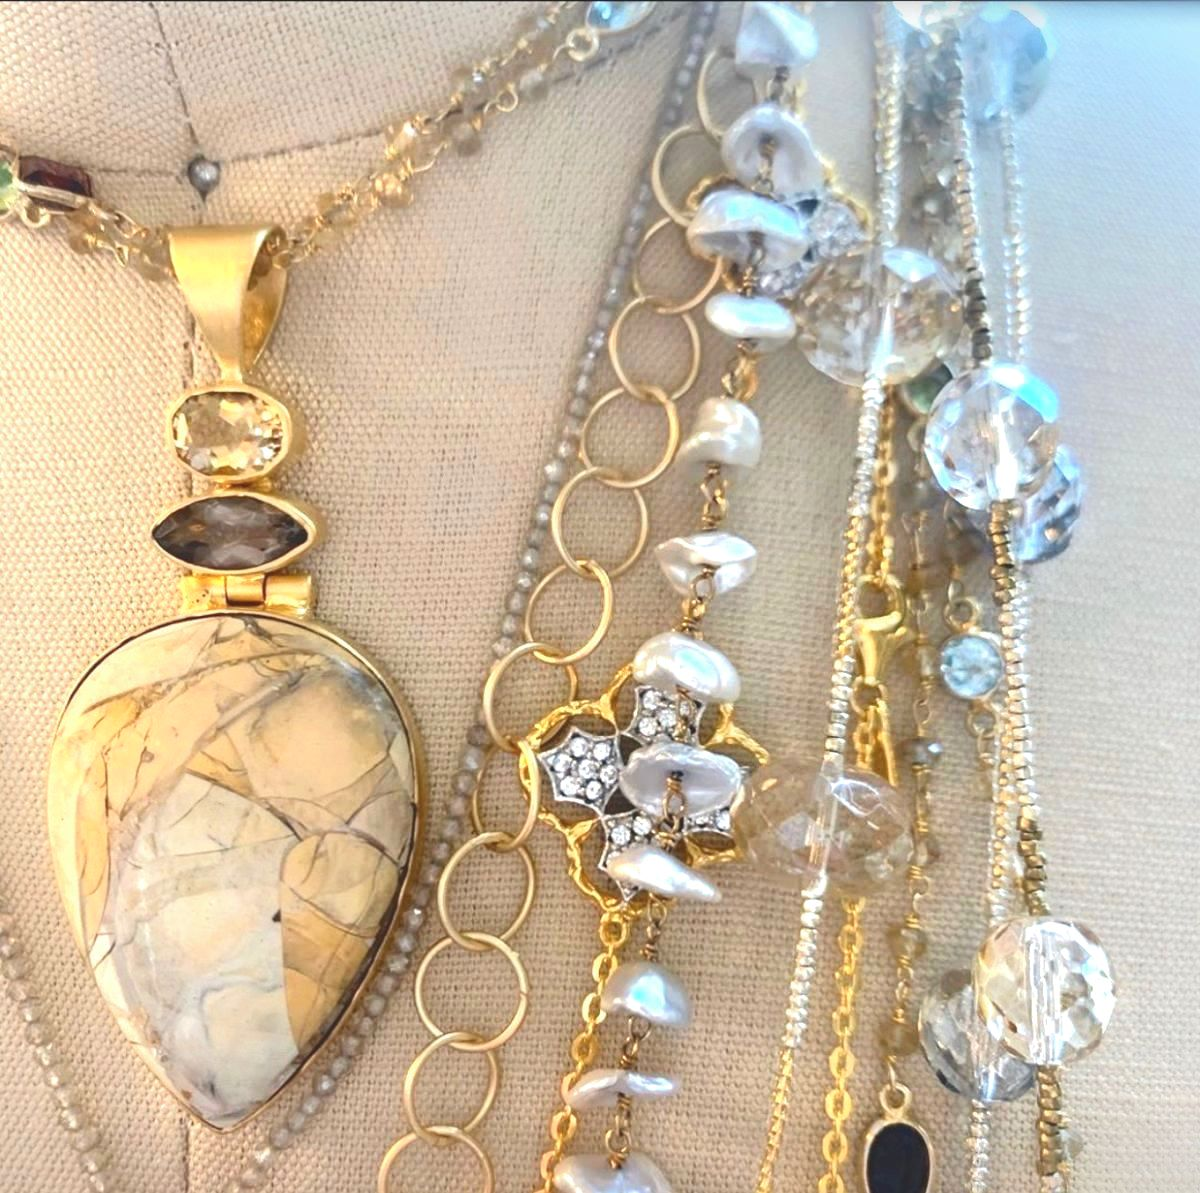 BITTERSWEET NECKLACES LAYERED